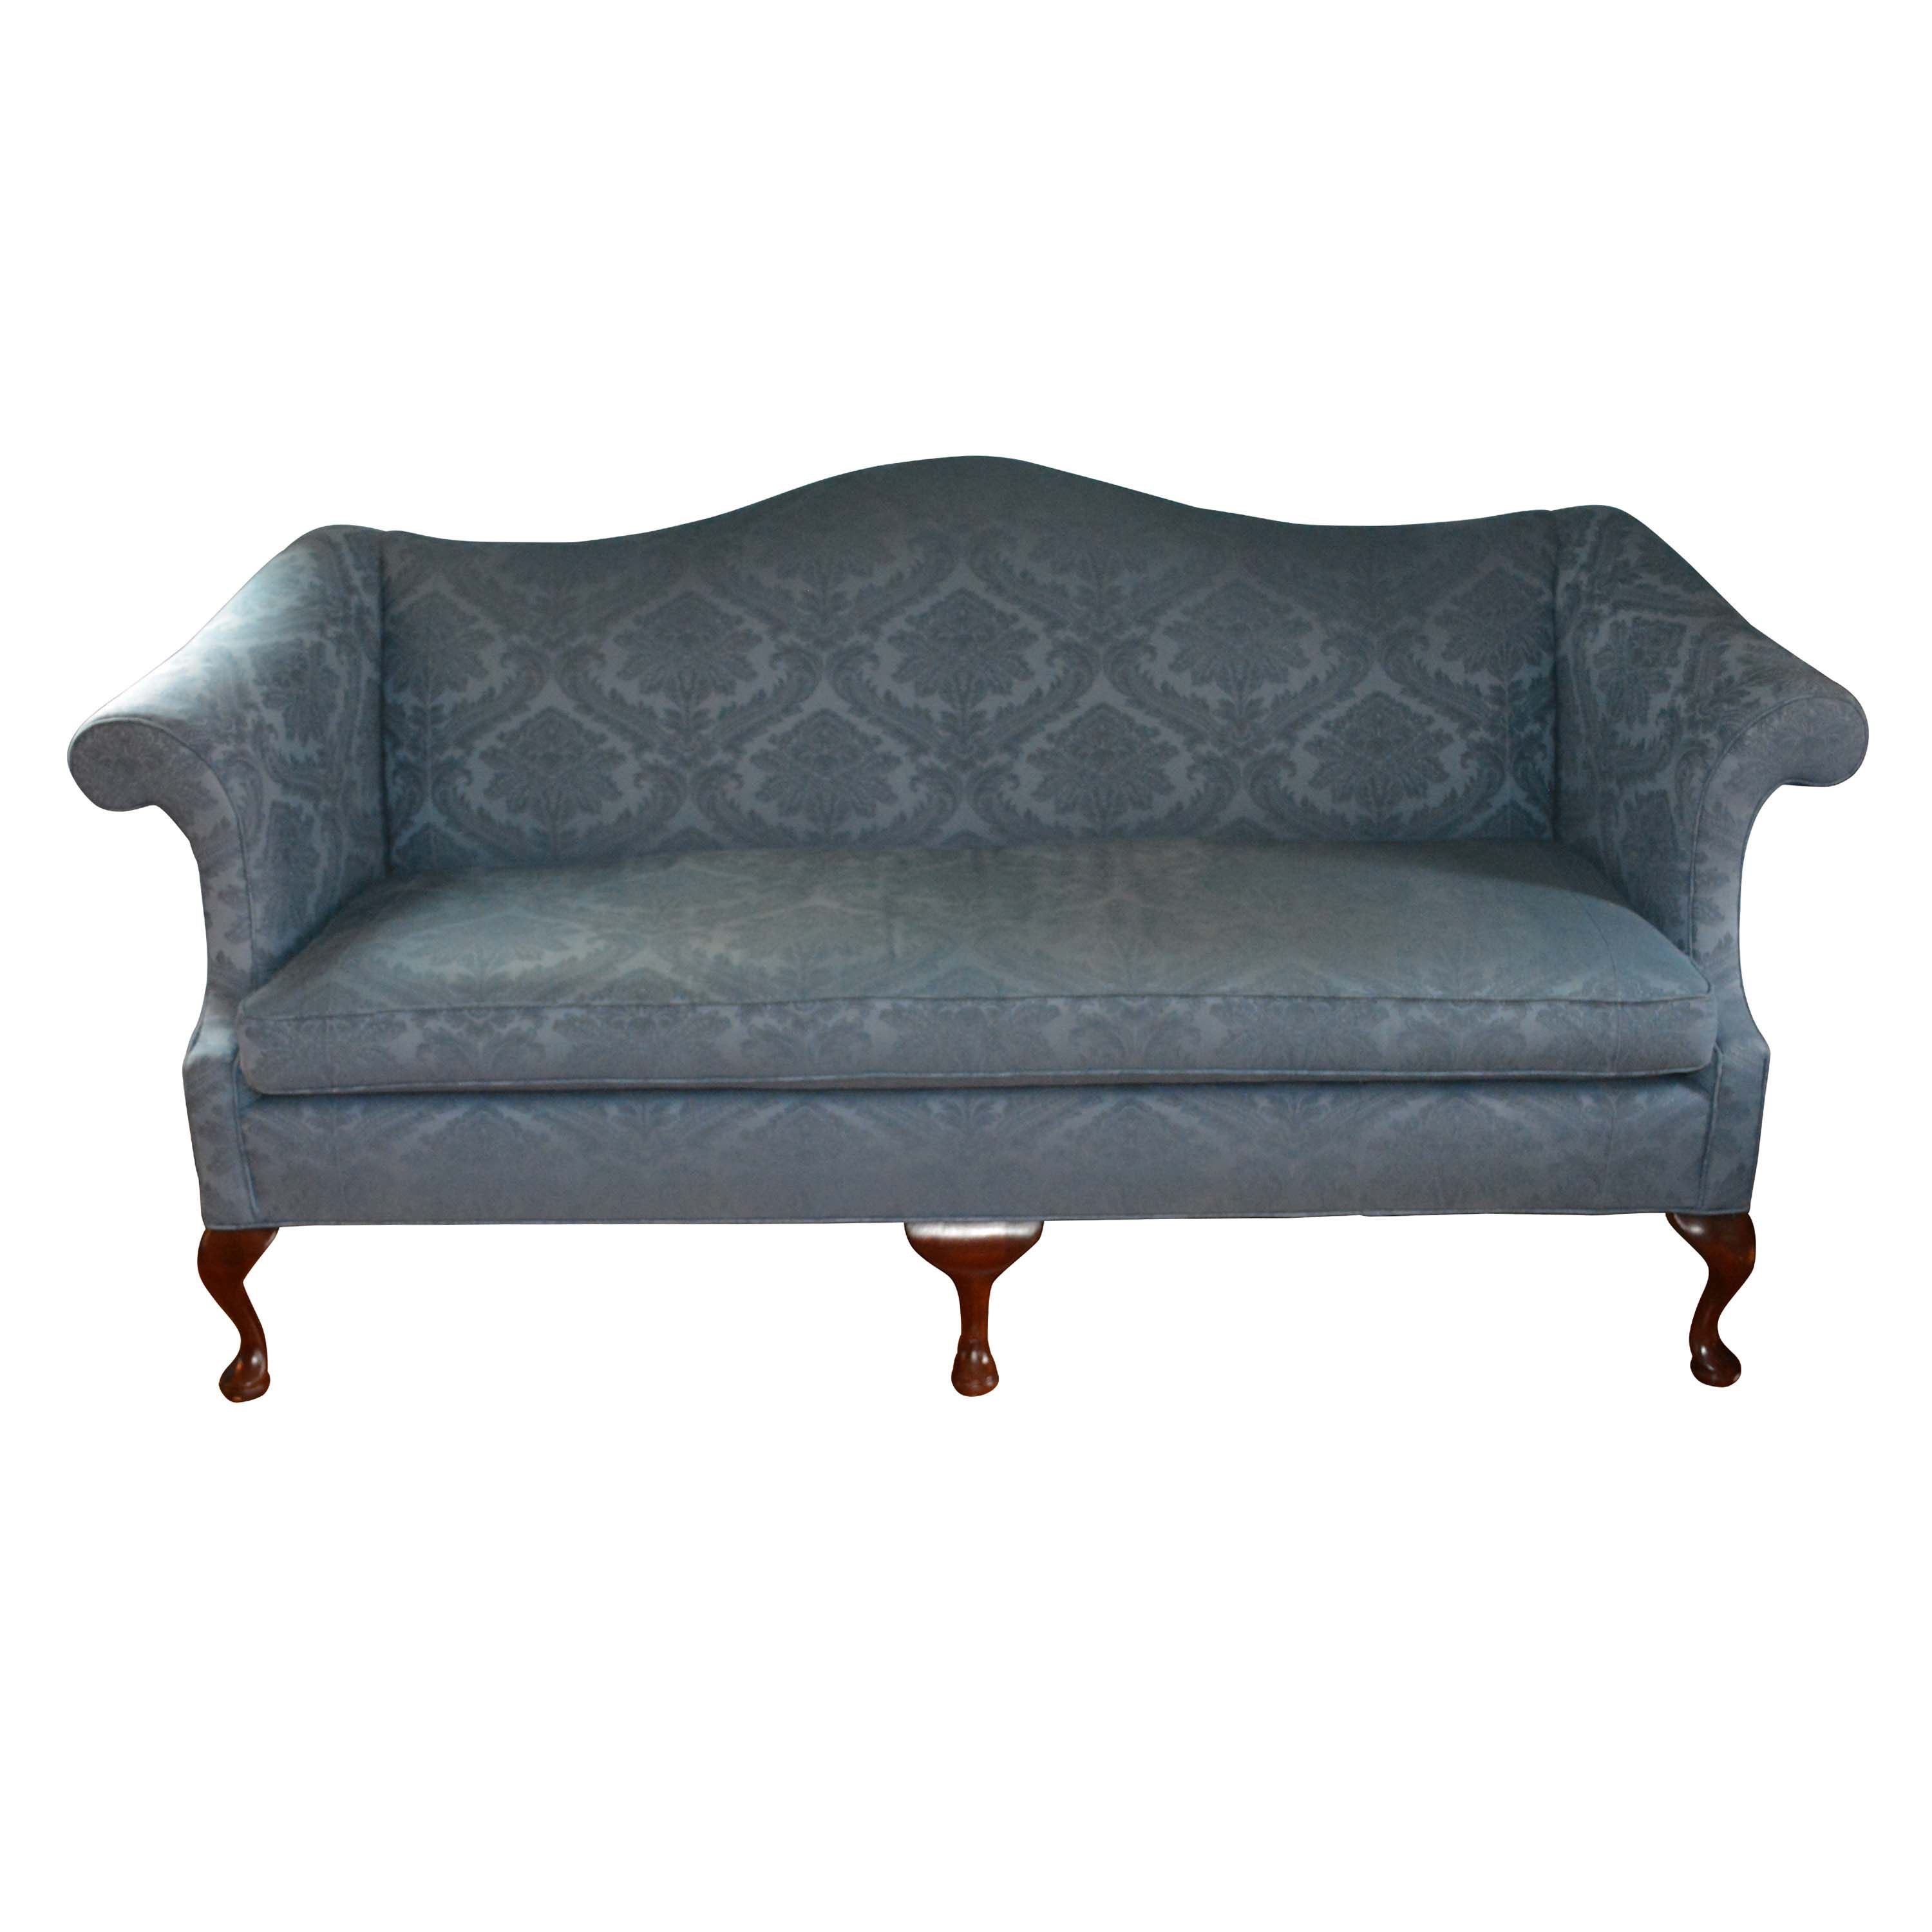 Queen Anne Style Sofa by Pennsylvania House